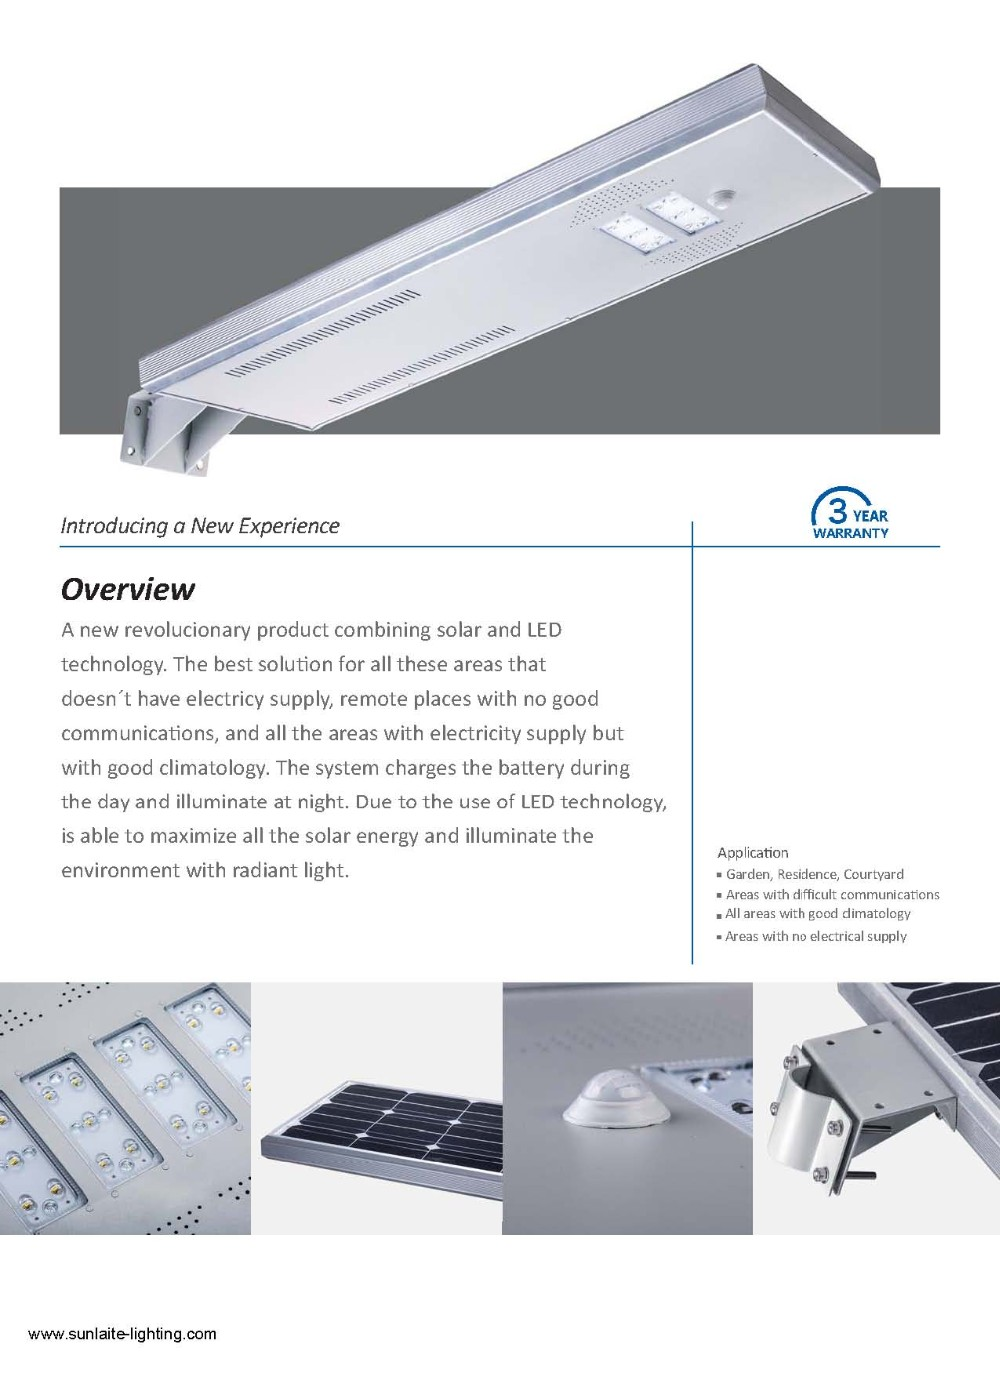 solar street light solar power street light all in one for special applications 40w solar light for outdoor used